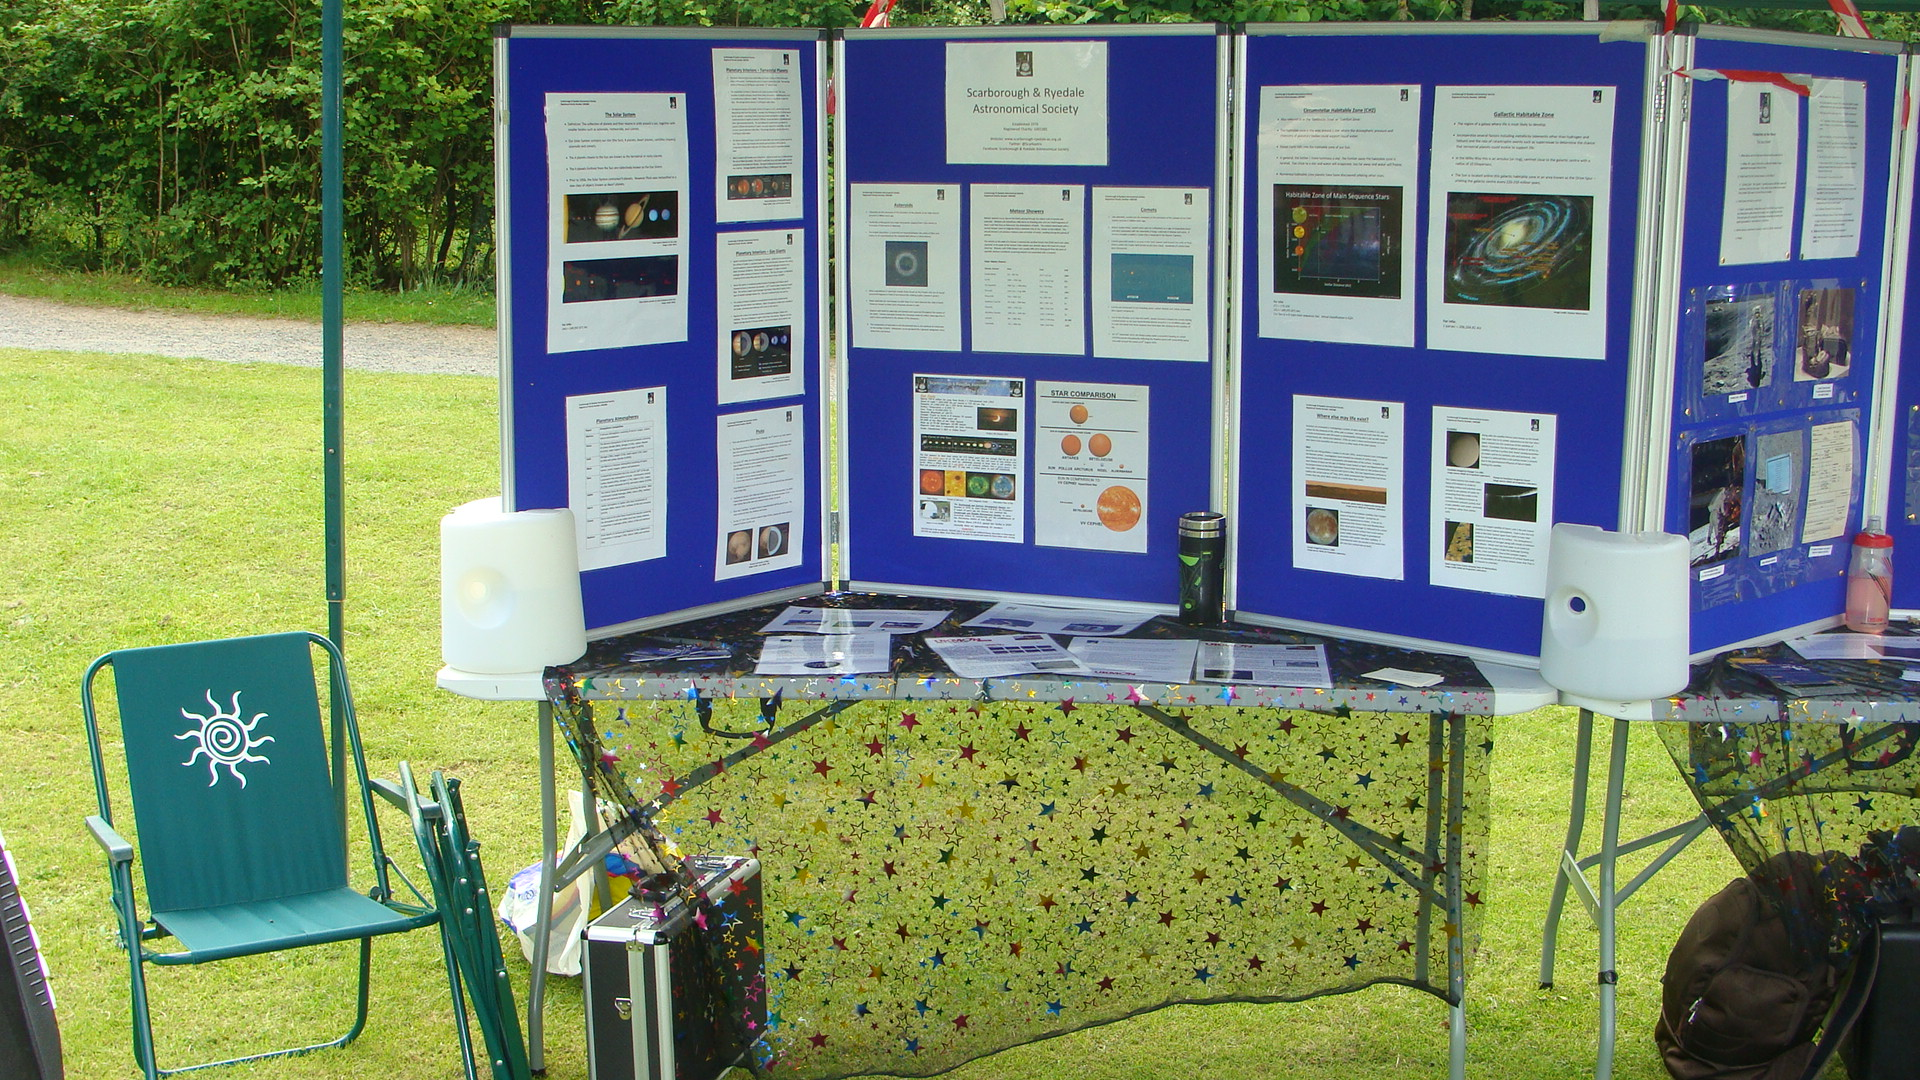 Astronomical and Society Information